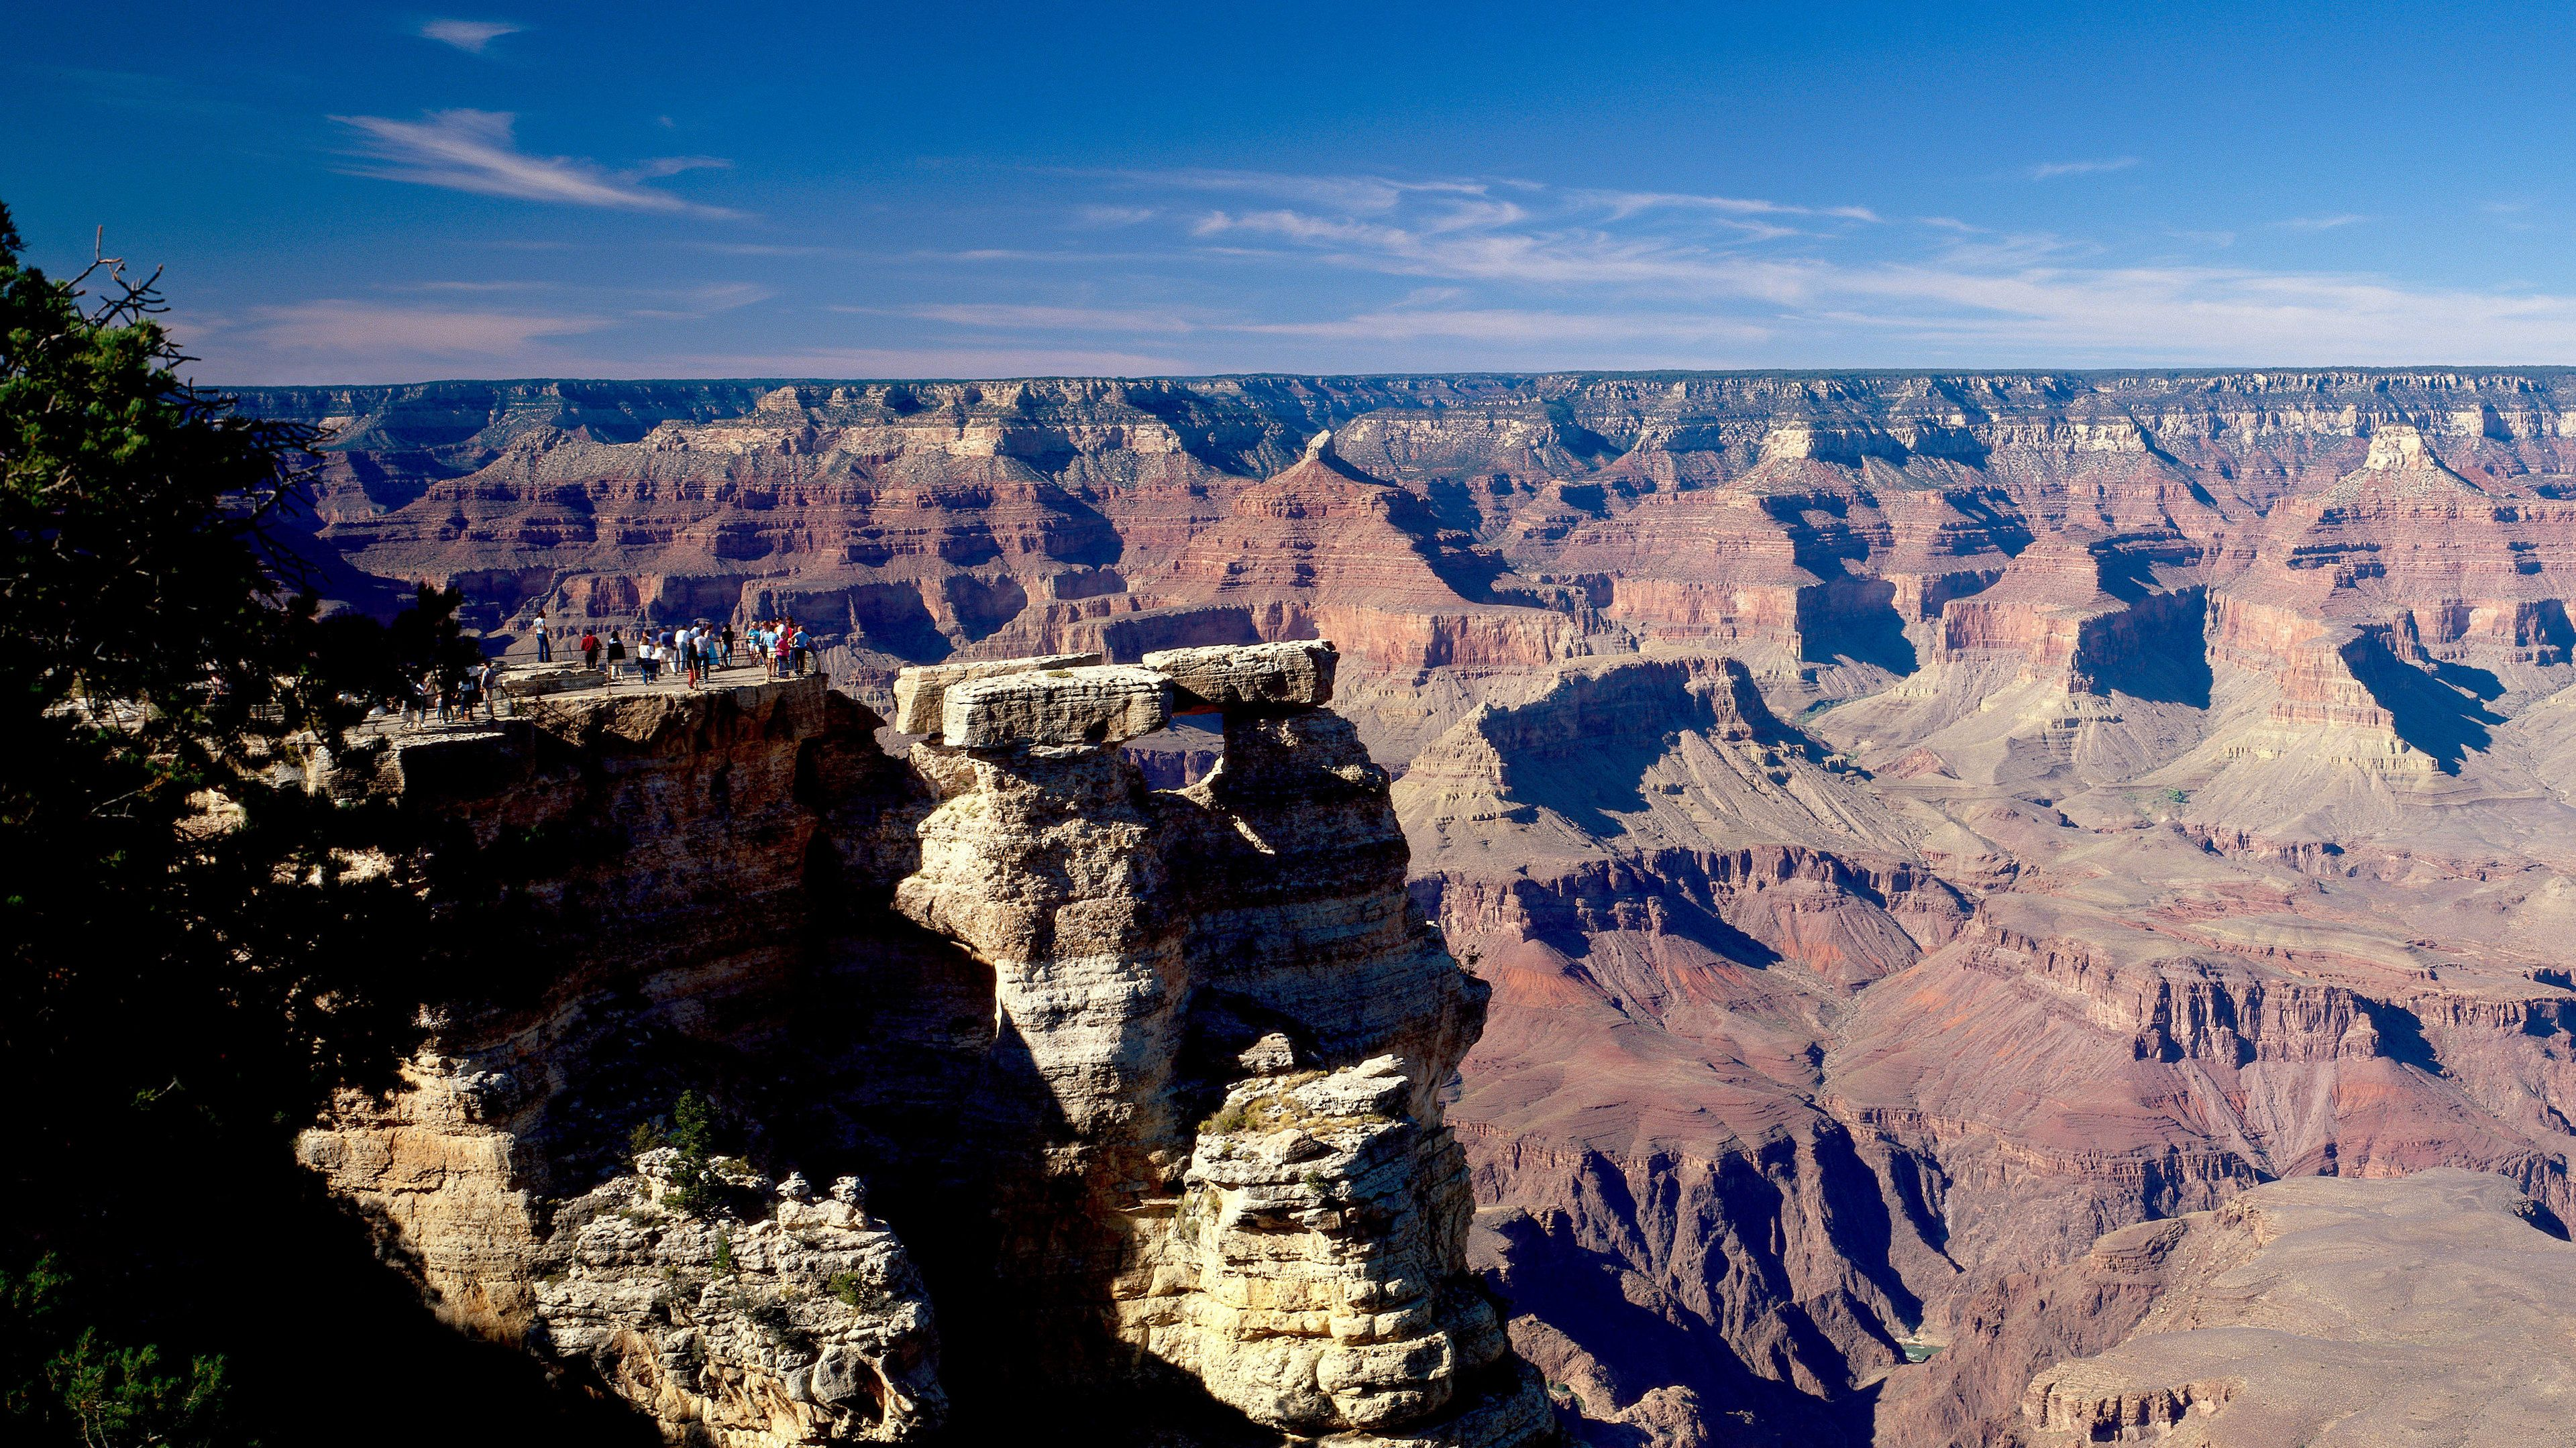 People at a lookout point on the edge of the Grand Canyon